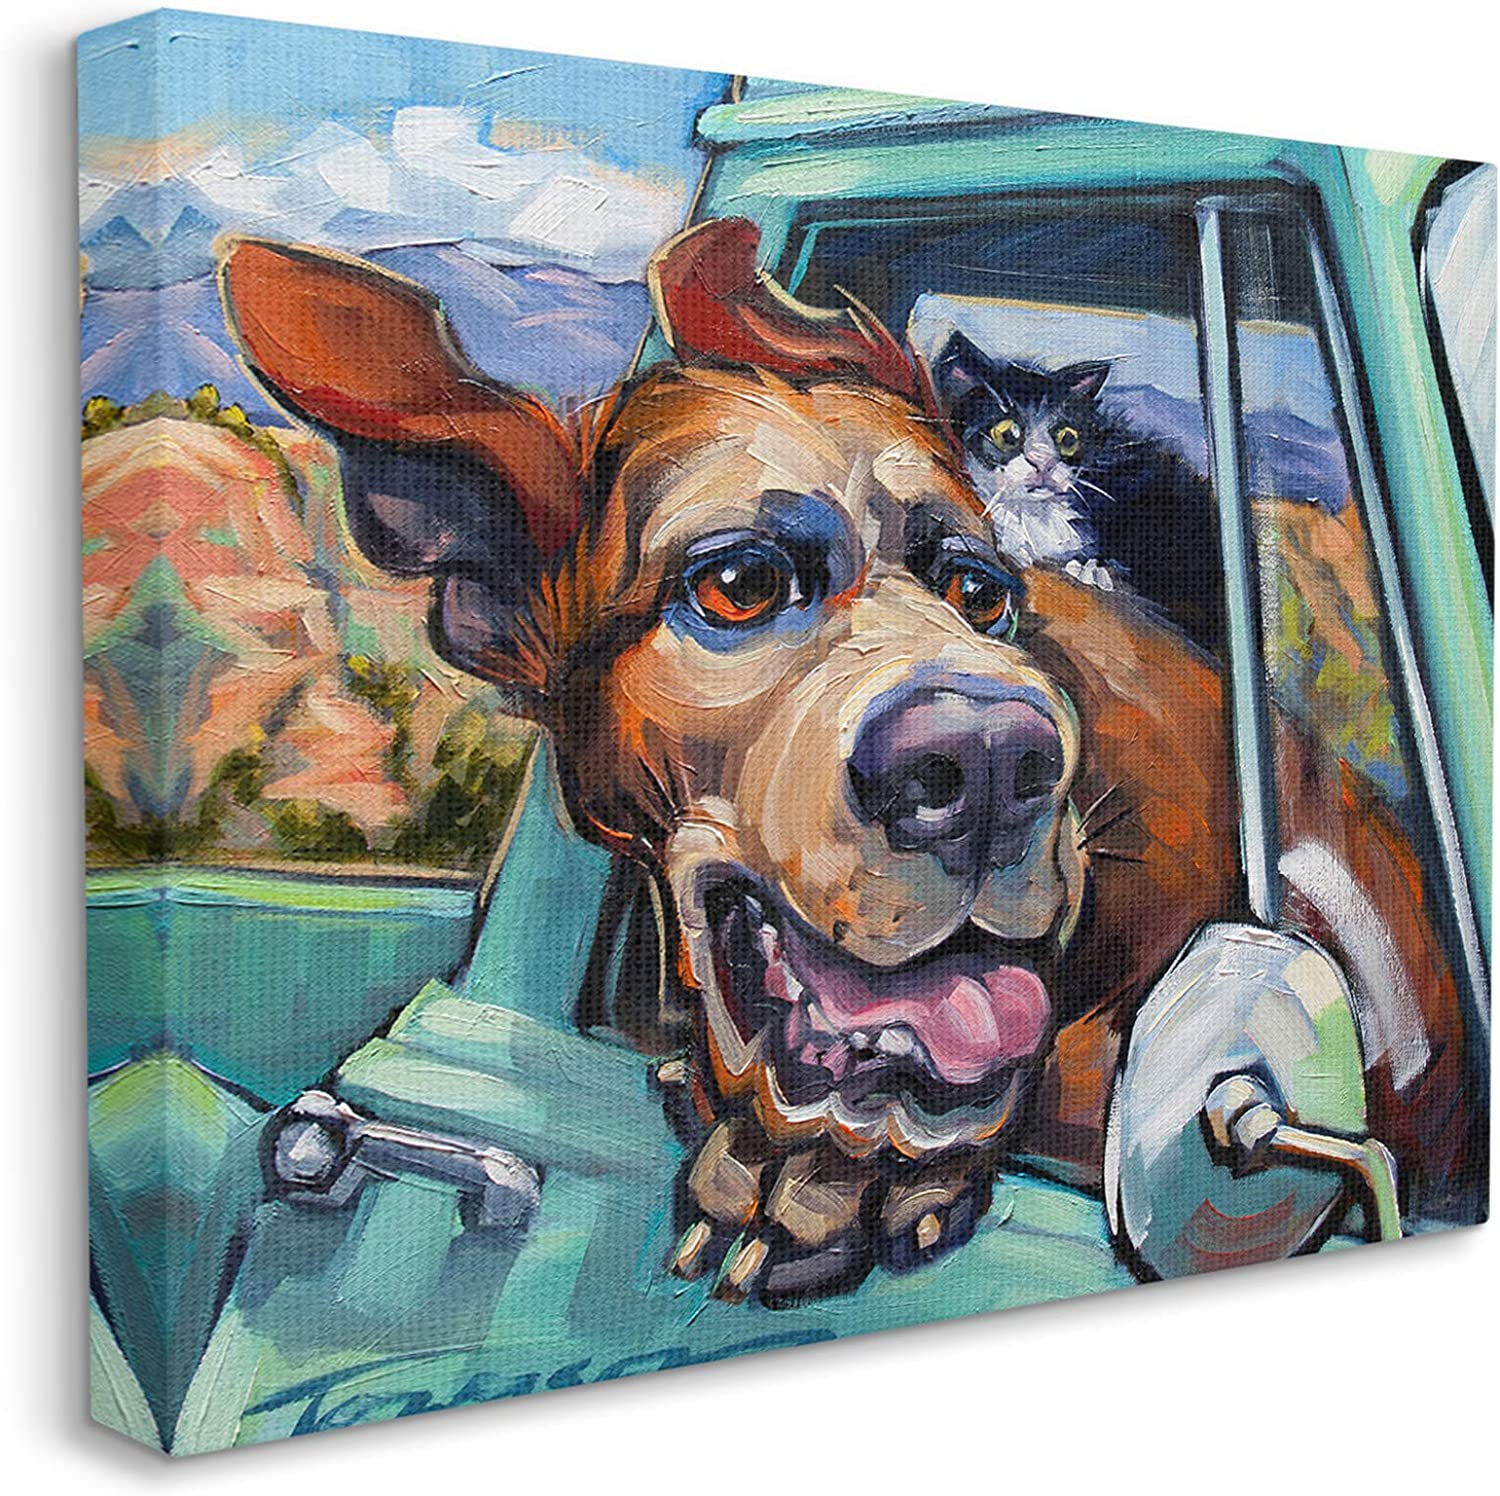 Stupell Industries Cat and Dog in Truck Window Wild Ride, Design by CR Townsend Canvas Wall Art, 24 x 30, Multi-Color